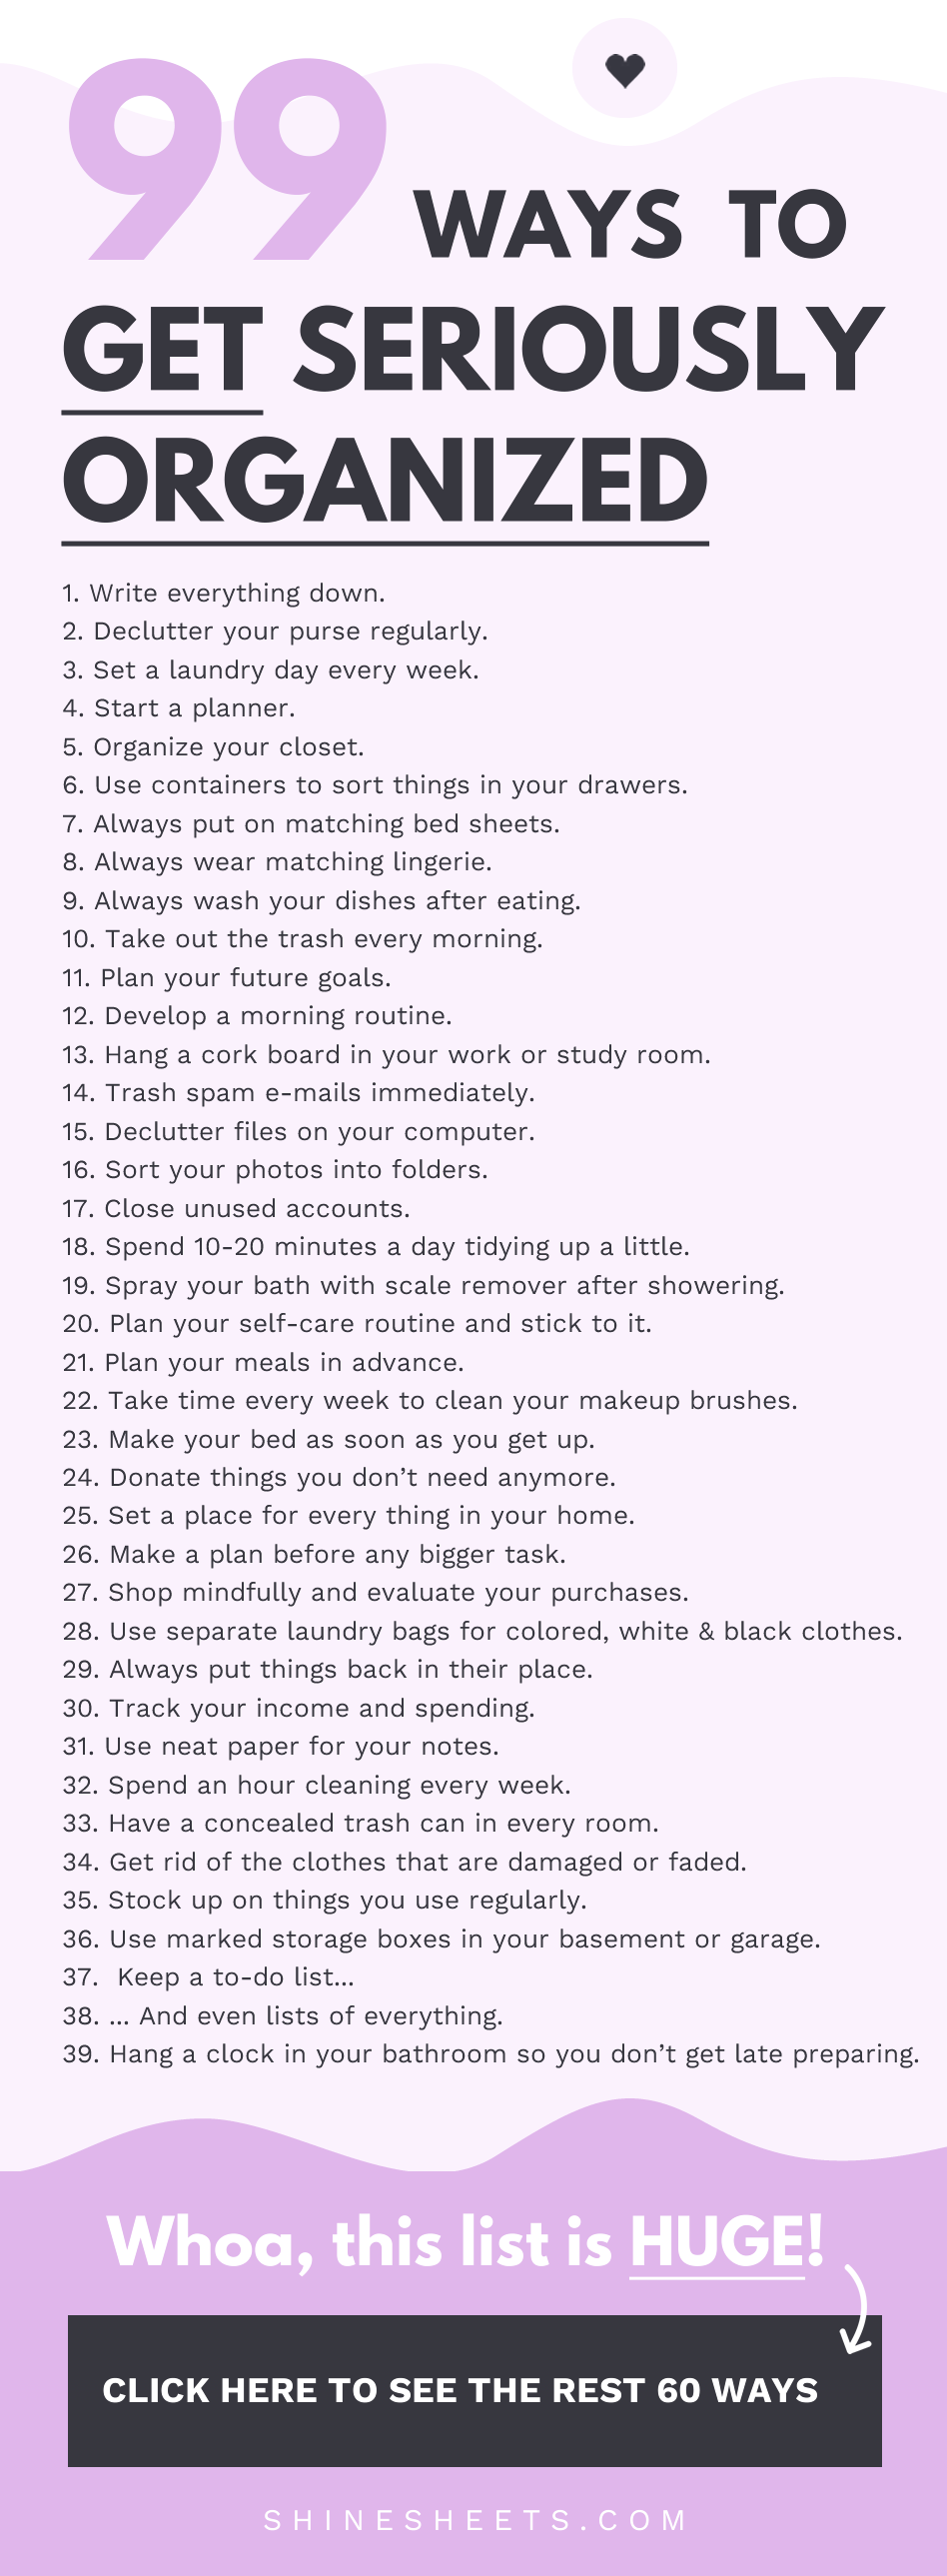 Get a list of 99 tips that will help you organize your life goals work and surroundings Hint  theyre easy and nonoverwhelming   Personal development Self Improvement Orga...